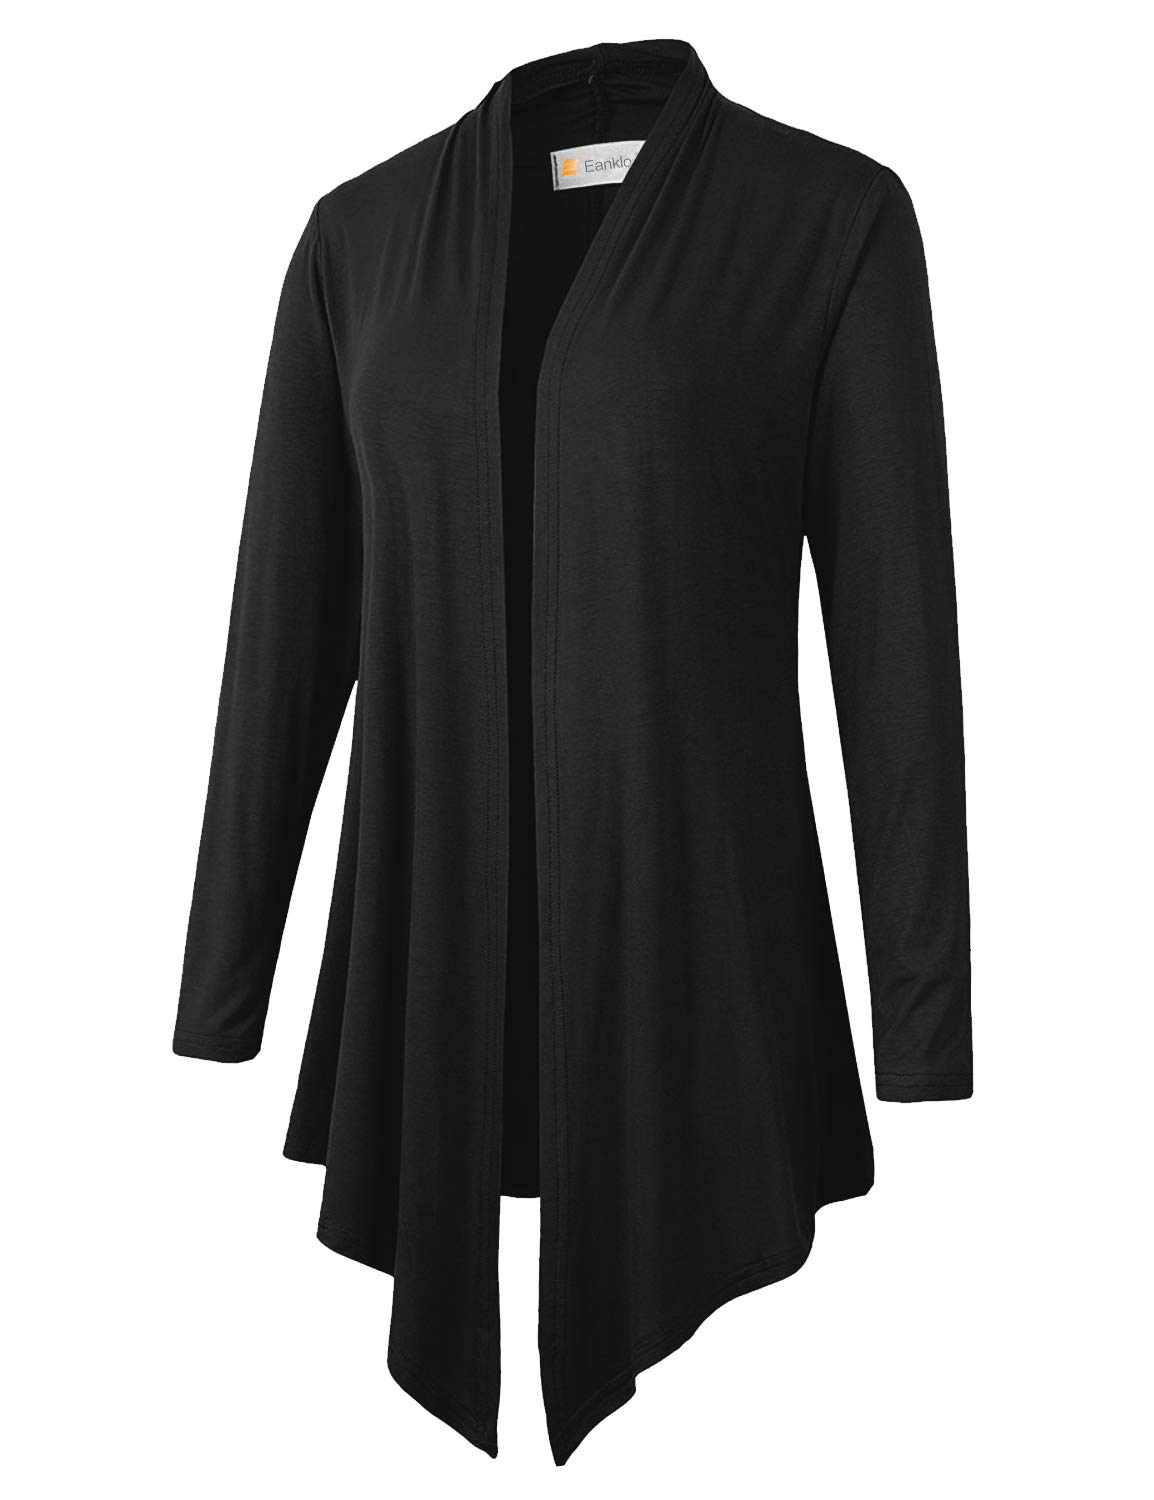 Eanklosco Women\'s Long Sleeve Drape Open-Front Cardigan Light Weight Irregular Hem Casual Tops (S, Black)